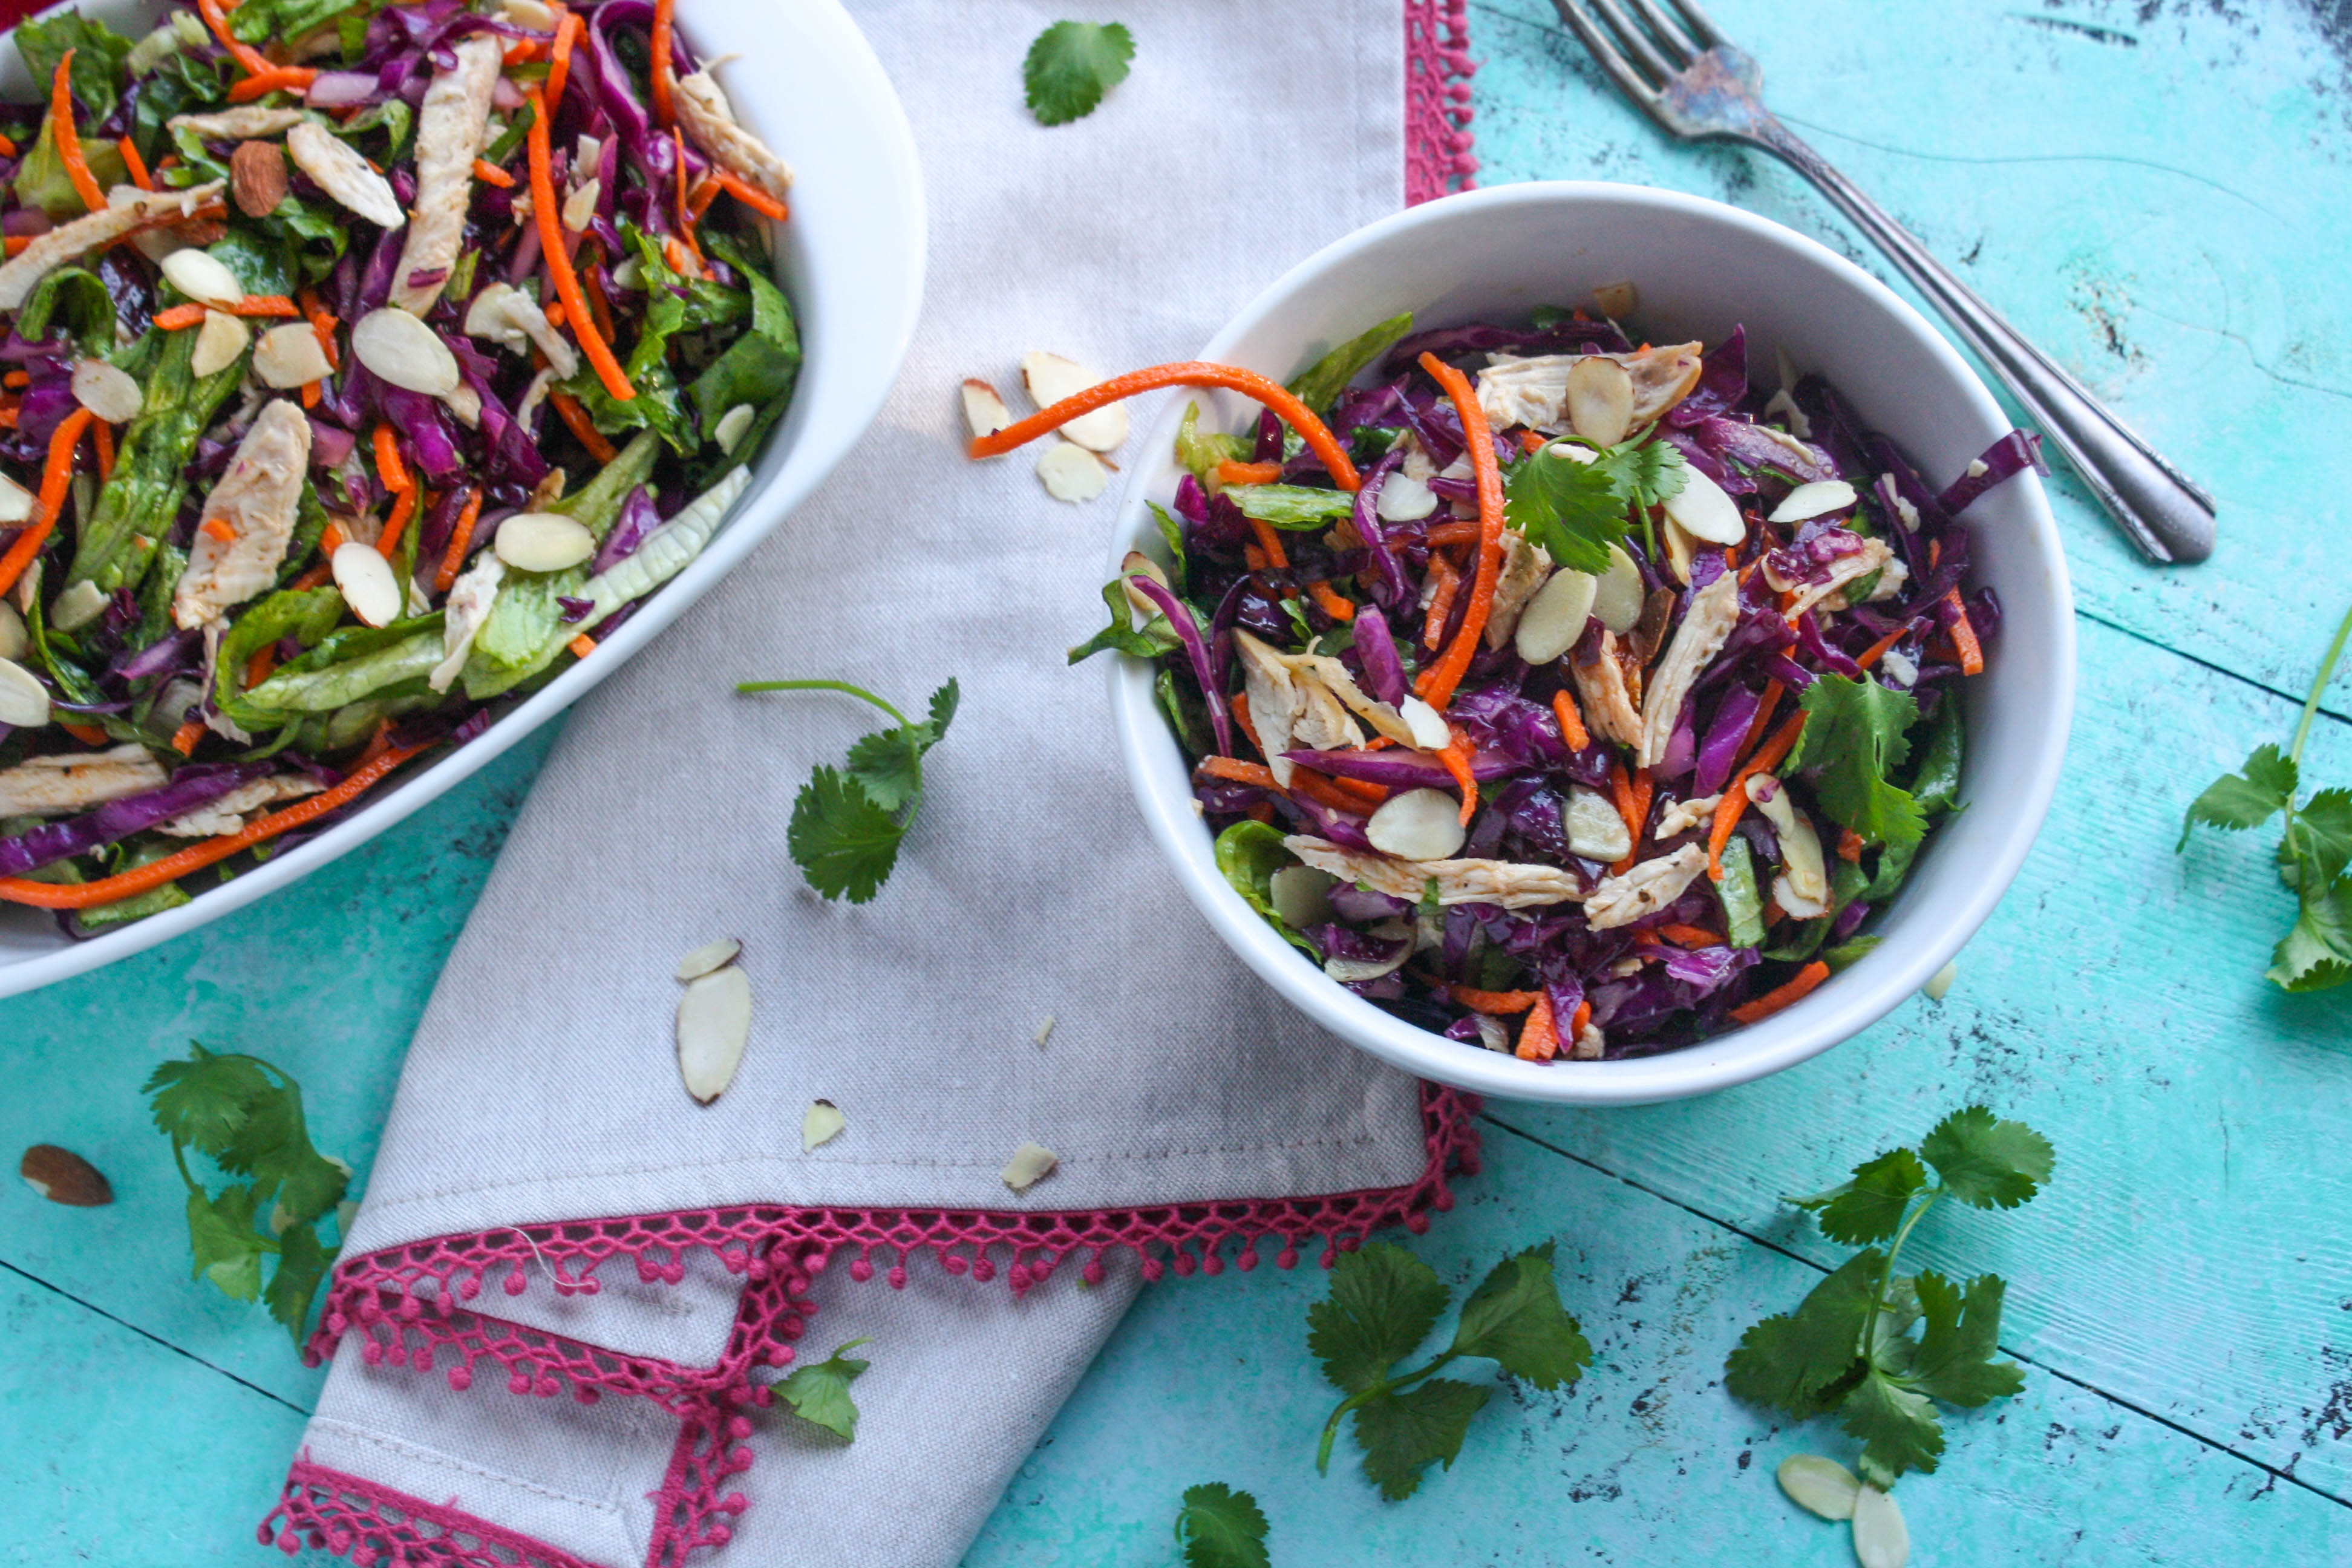 Crunchy Cabbage & Chicken Salad with Sesame Dressing is full of flavor...and crunch! You'll love this tasty and colorful cabbage salad!